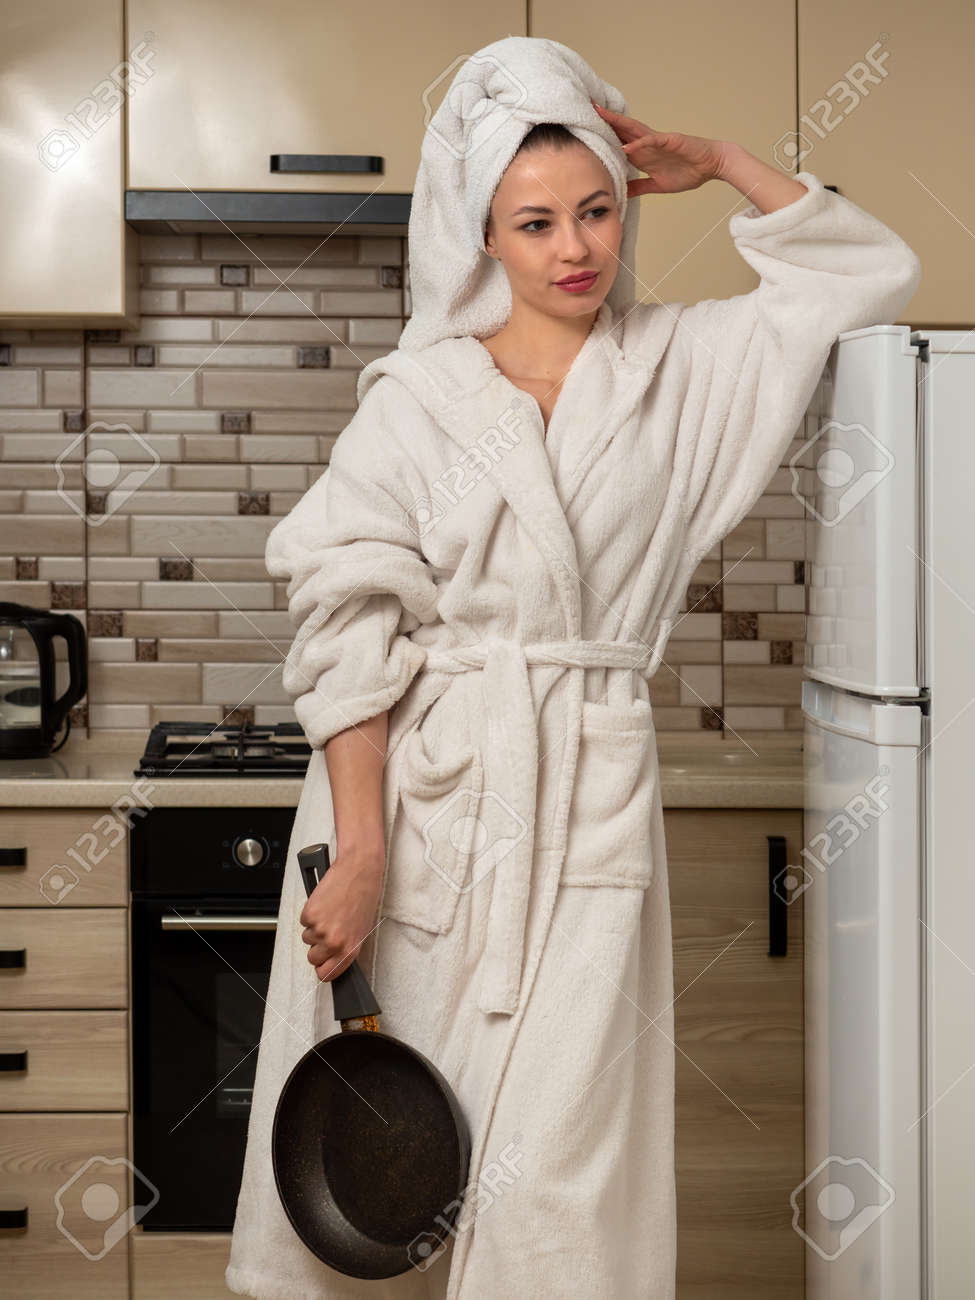 Young woman, housewife in the kitchen in a white, bathrobe with a frying pan. - 167003140